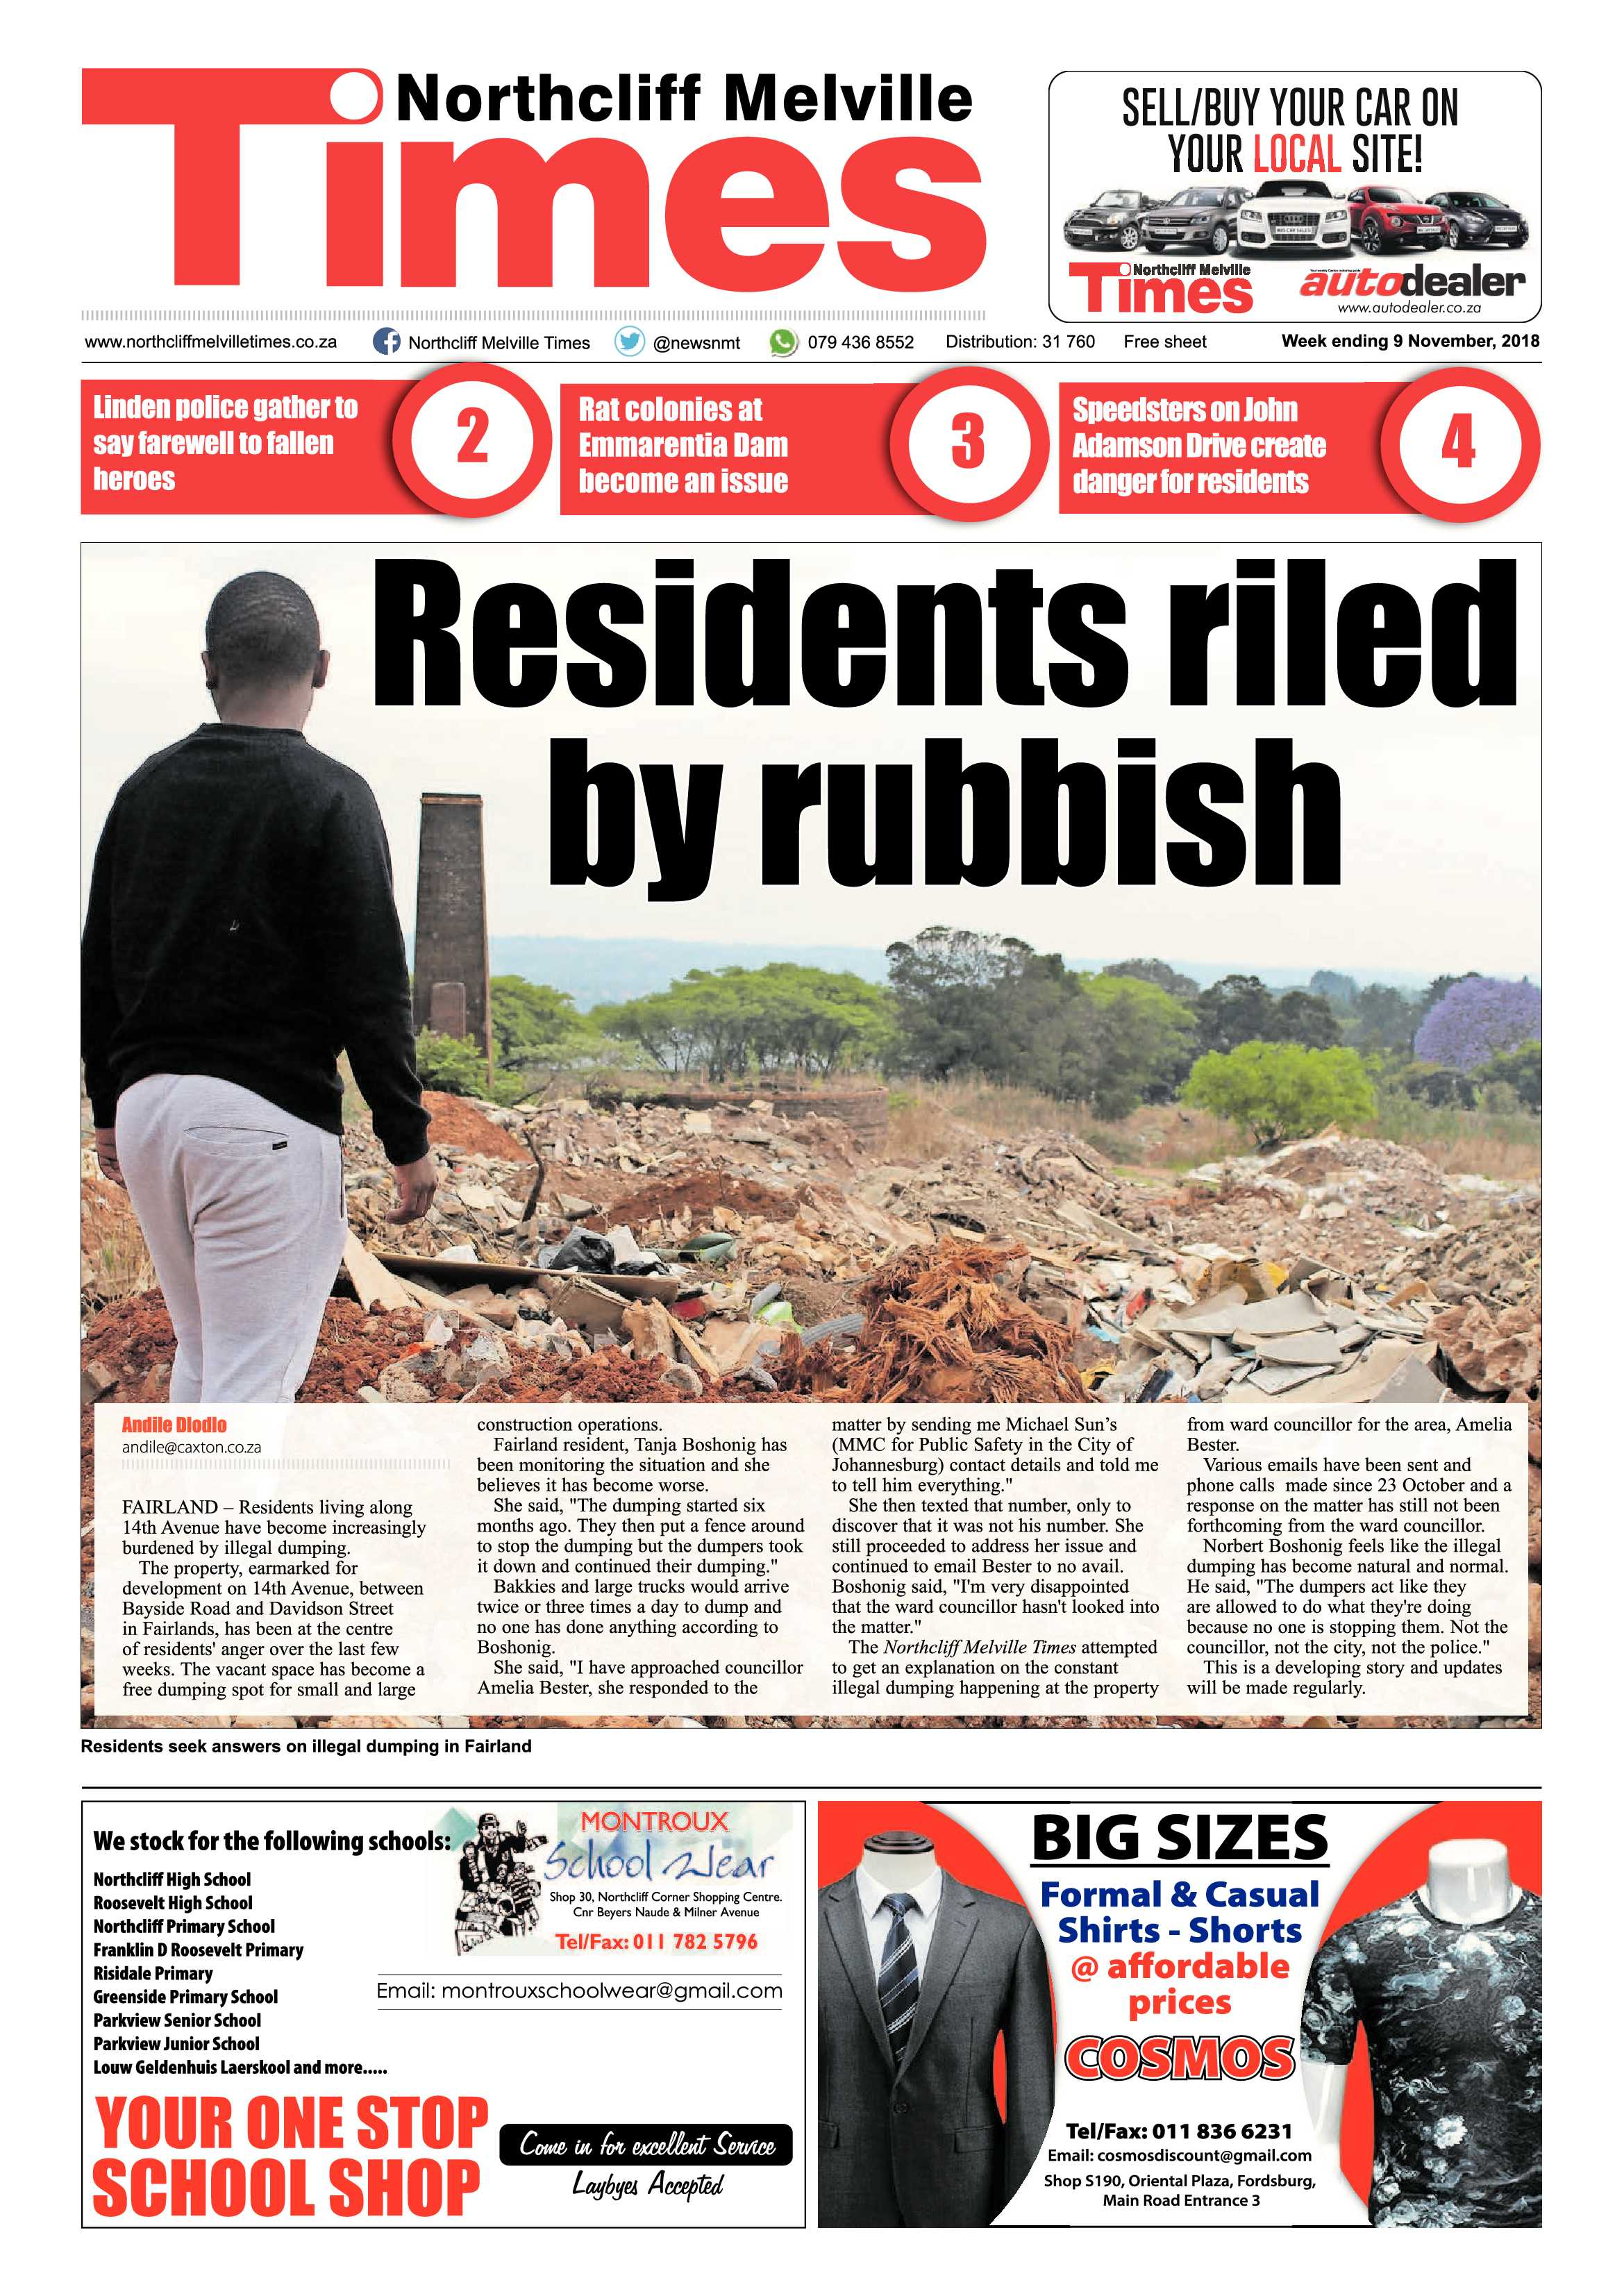 northcliff-melville-times-9-november-2018-epapers-page-1